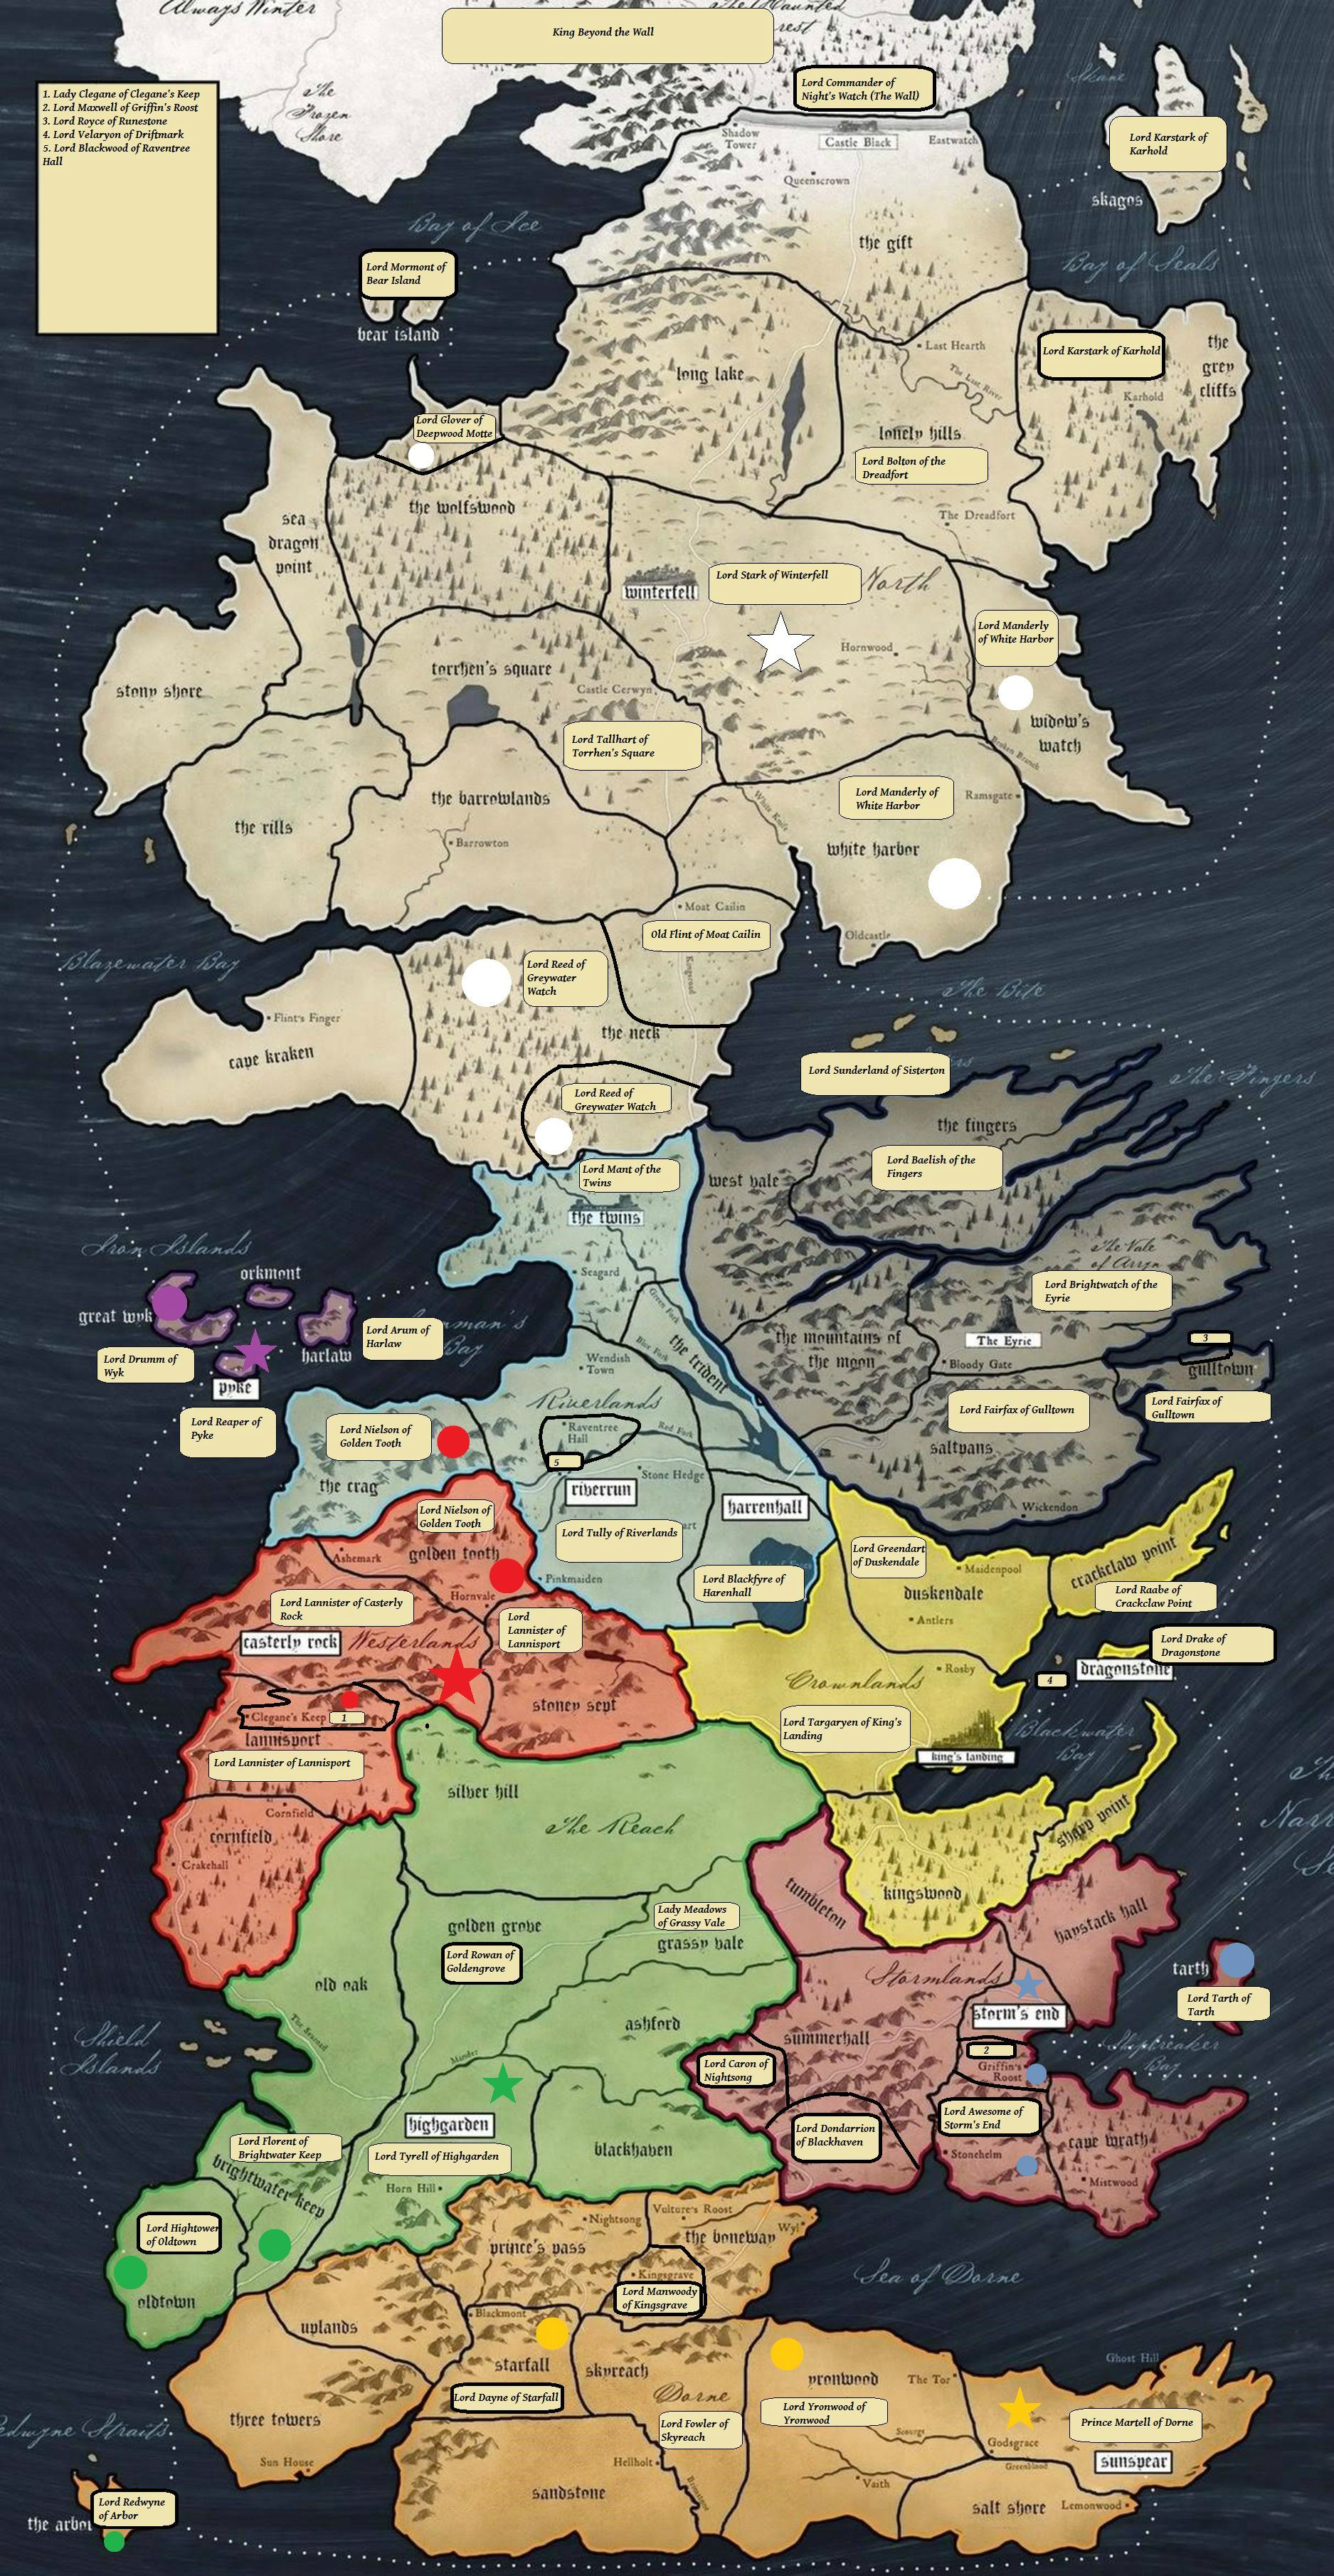 Game Of Thrones Houses Map : thrones, houses, Imgur:, Awesome, Images, Internet, Thrones, Westeros,